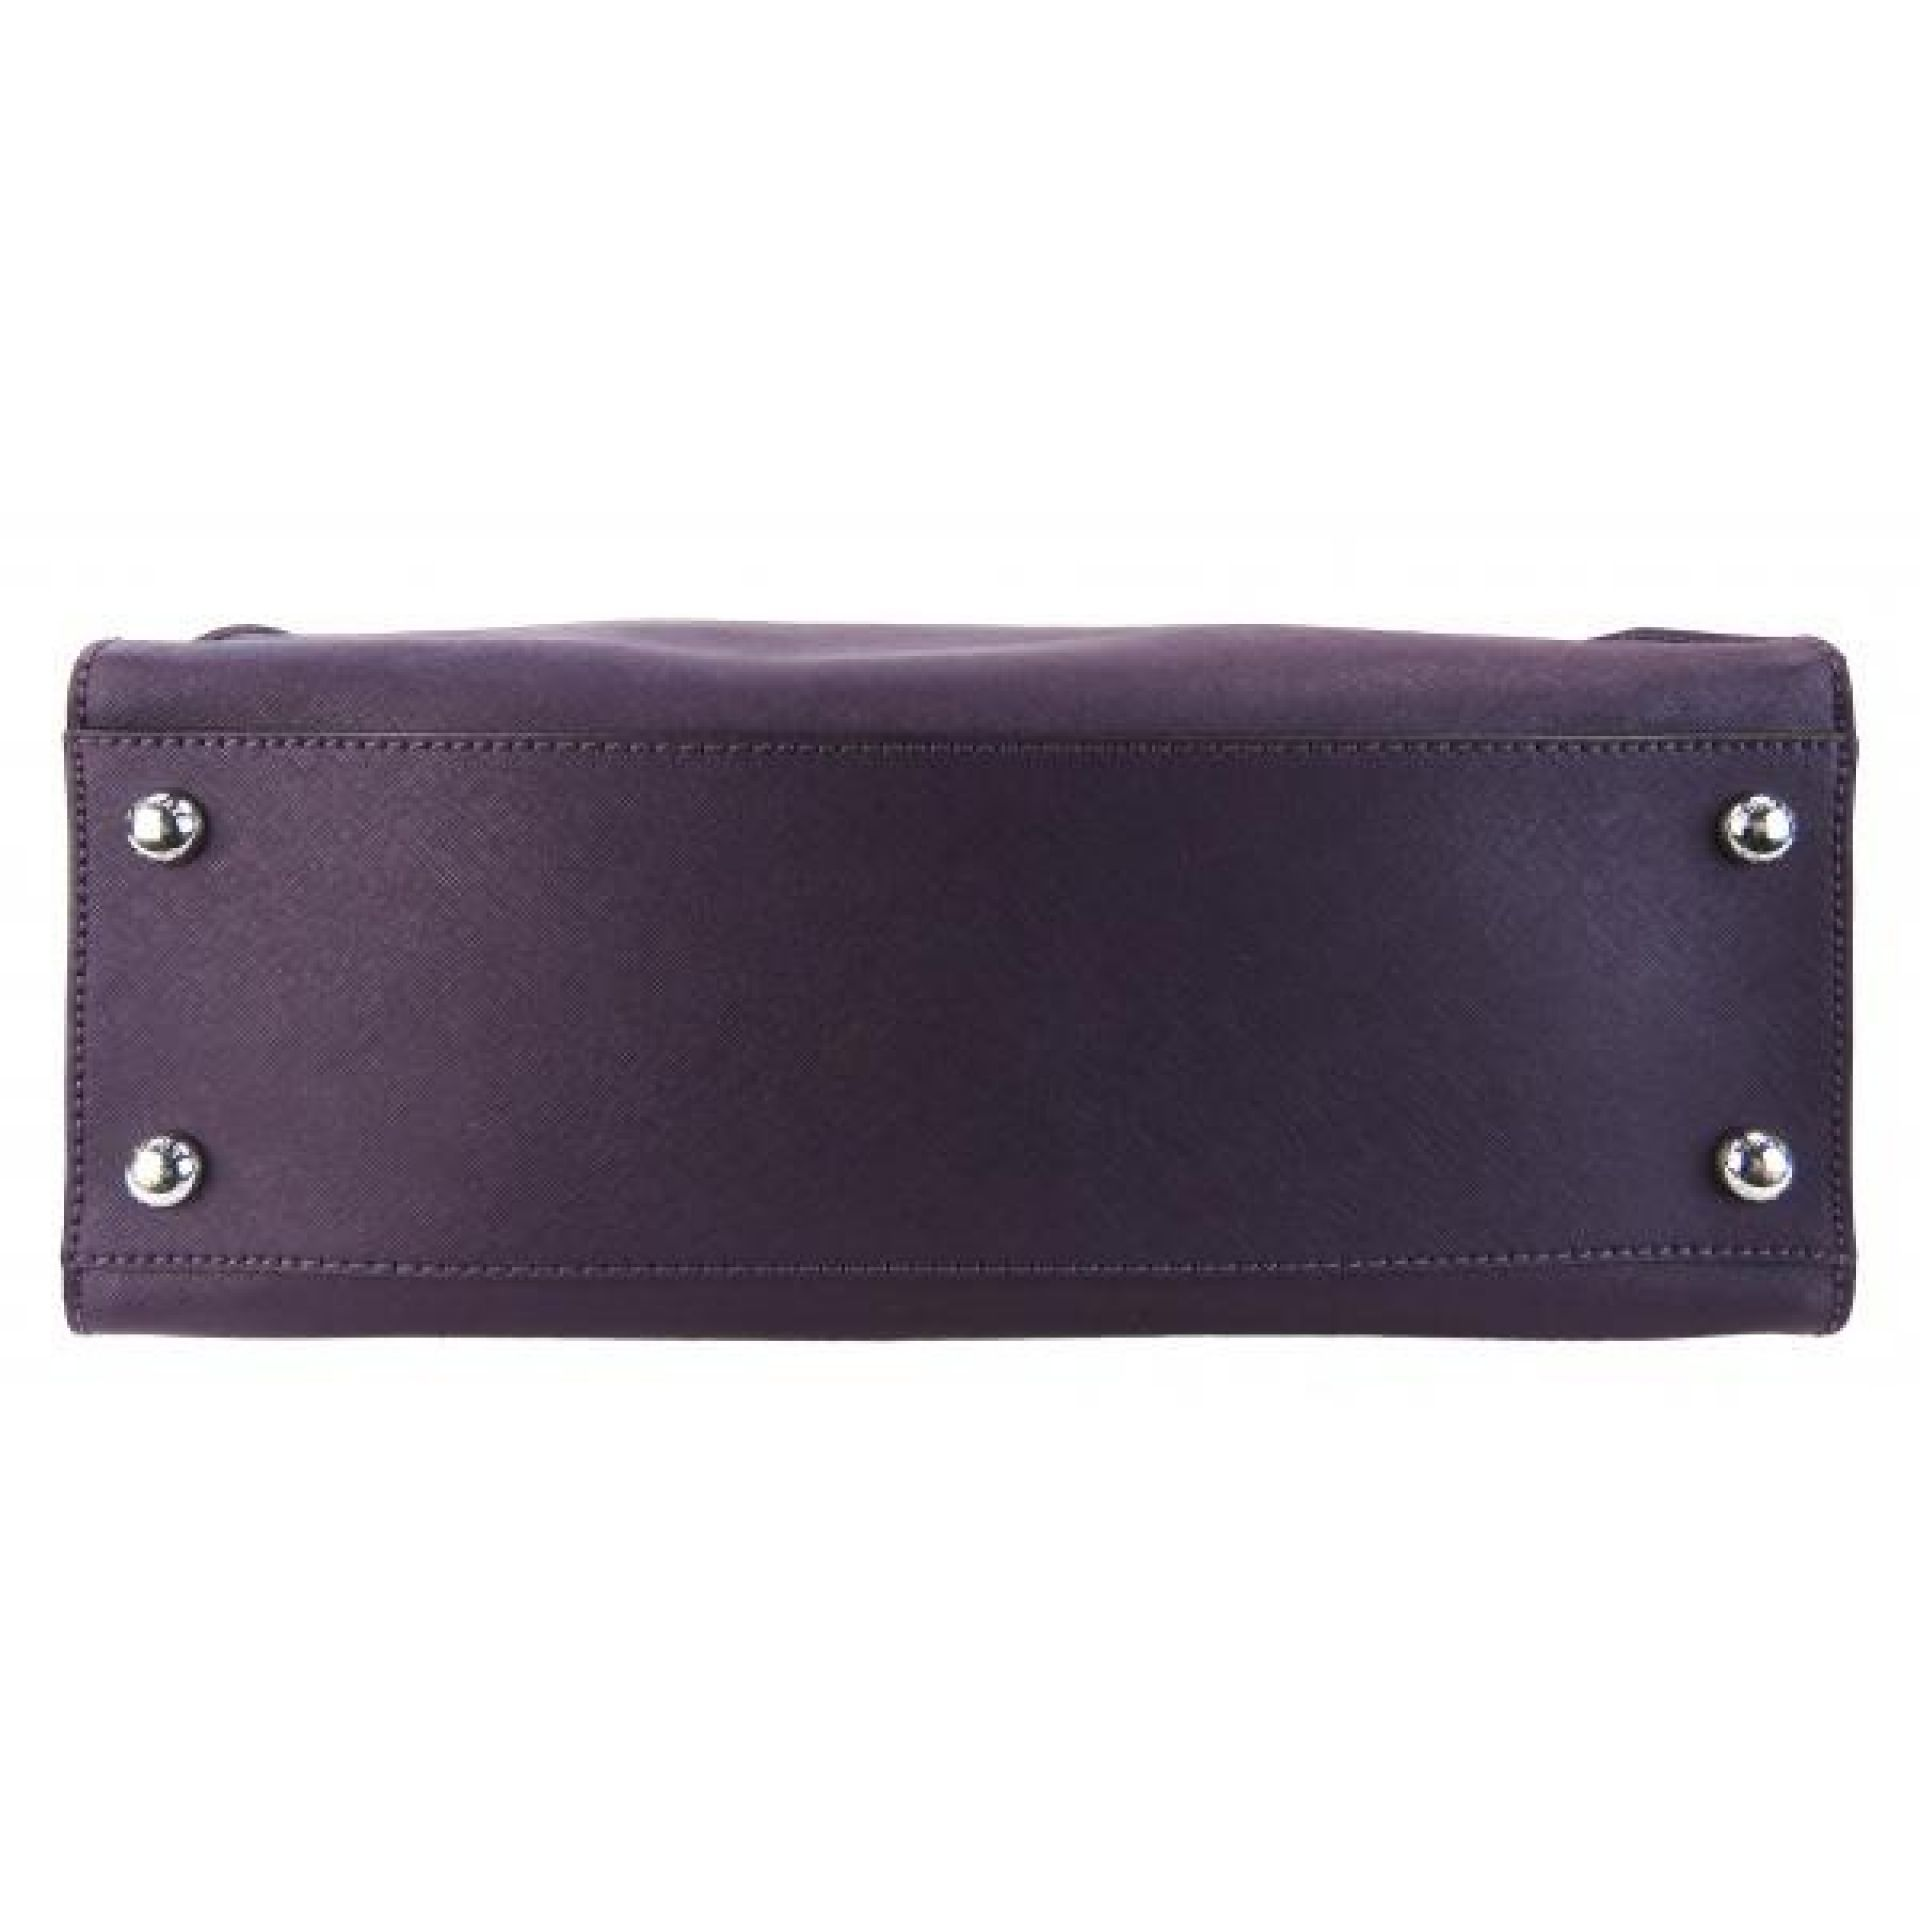 MICHAEL Michael Kors Purple Saffiano Leather Hamilton Shoulder Bag